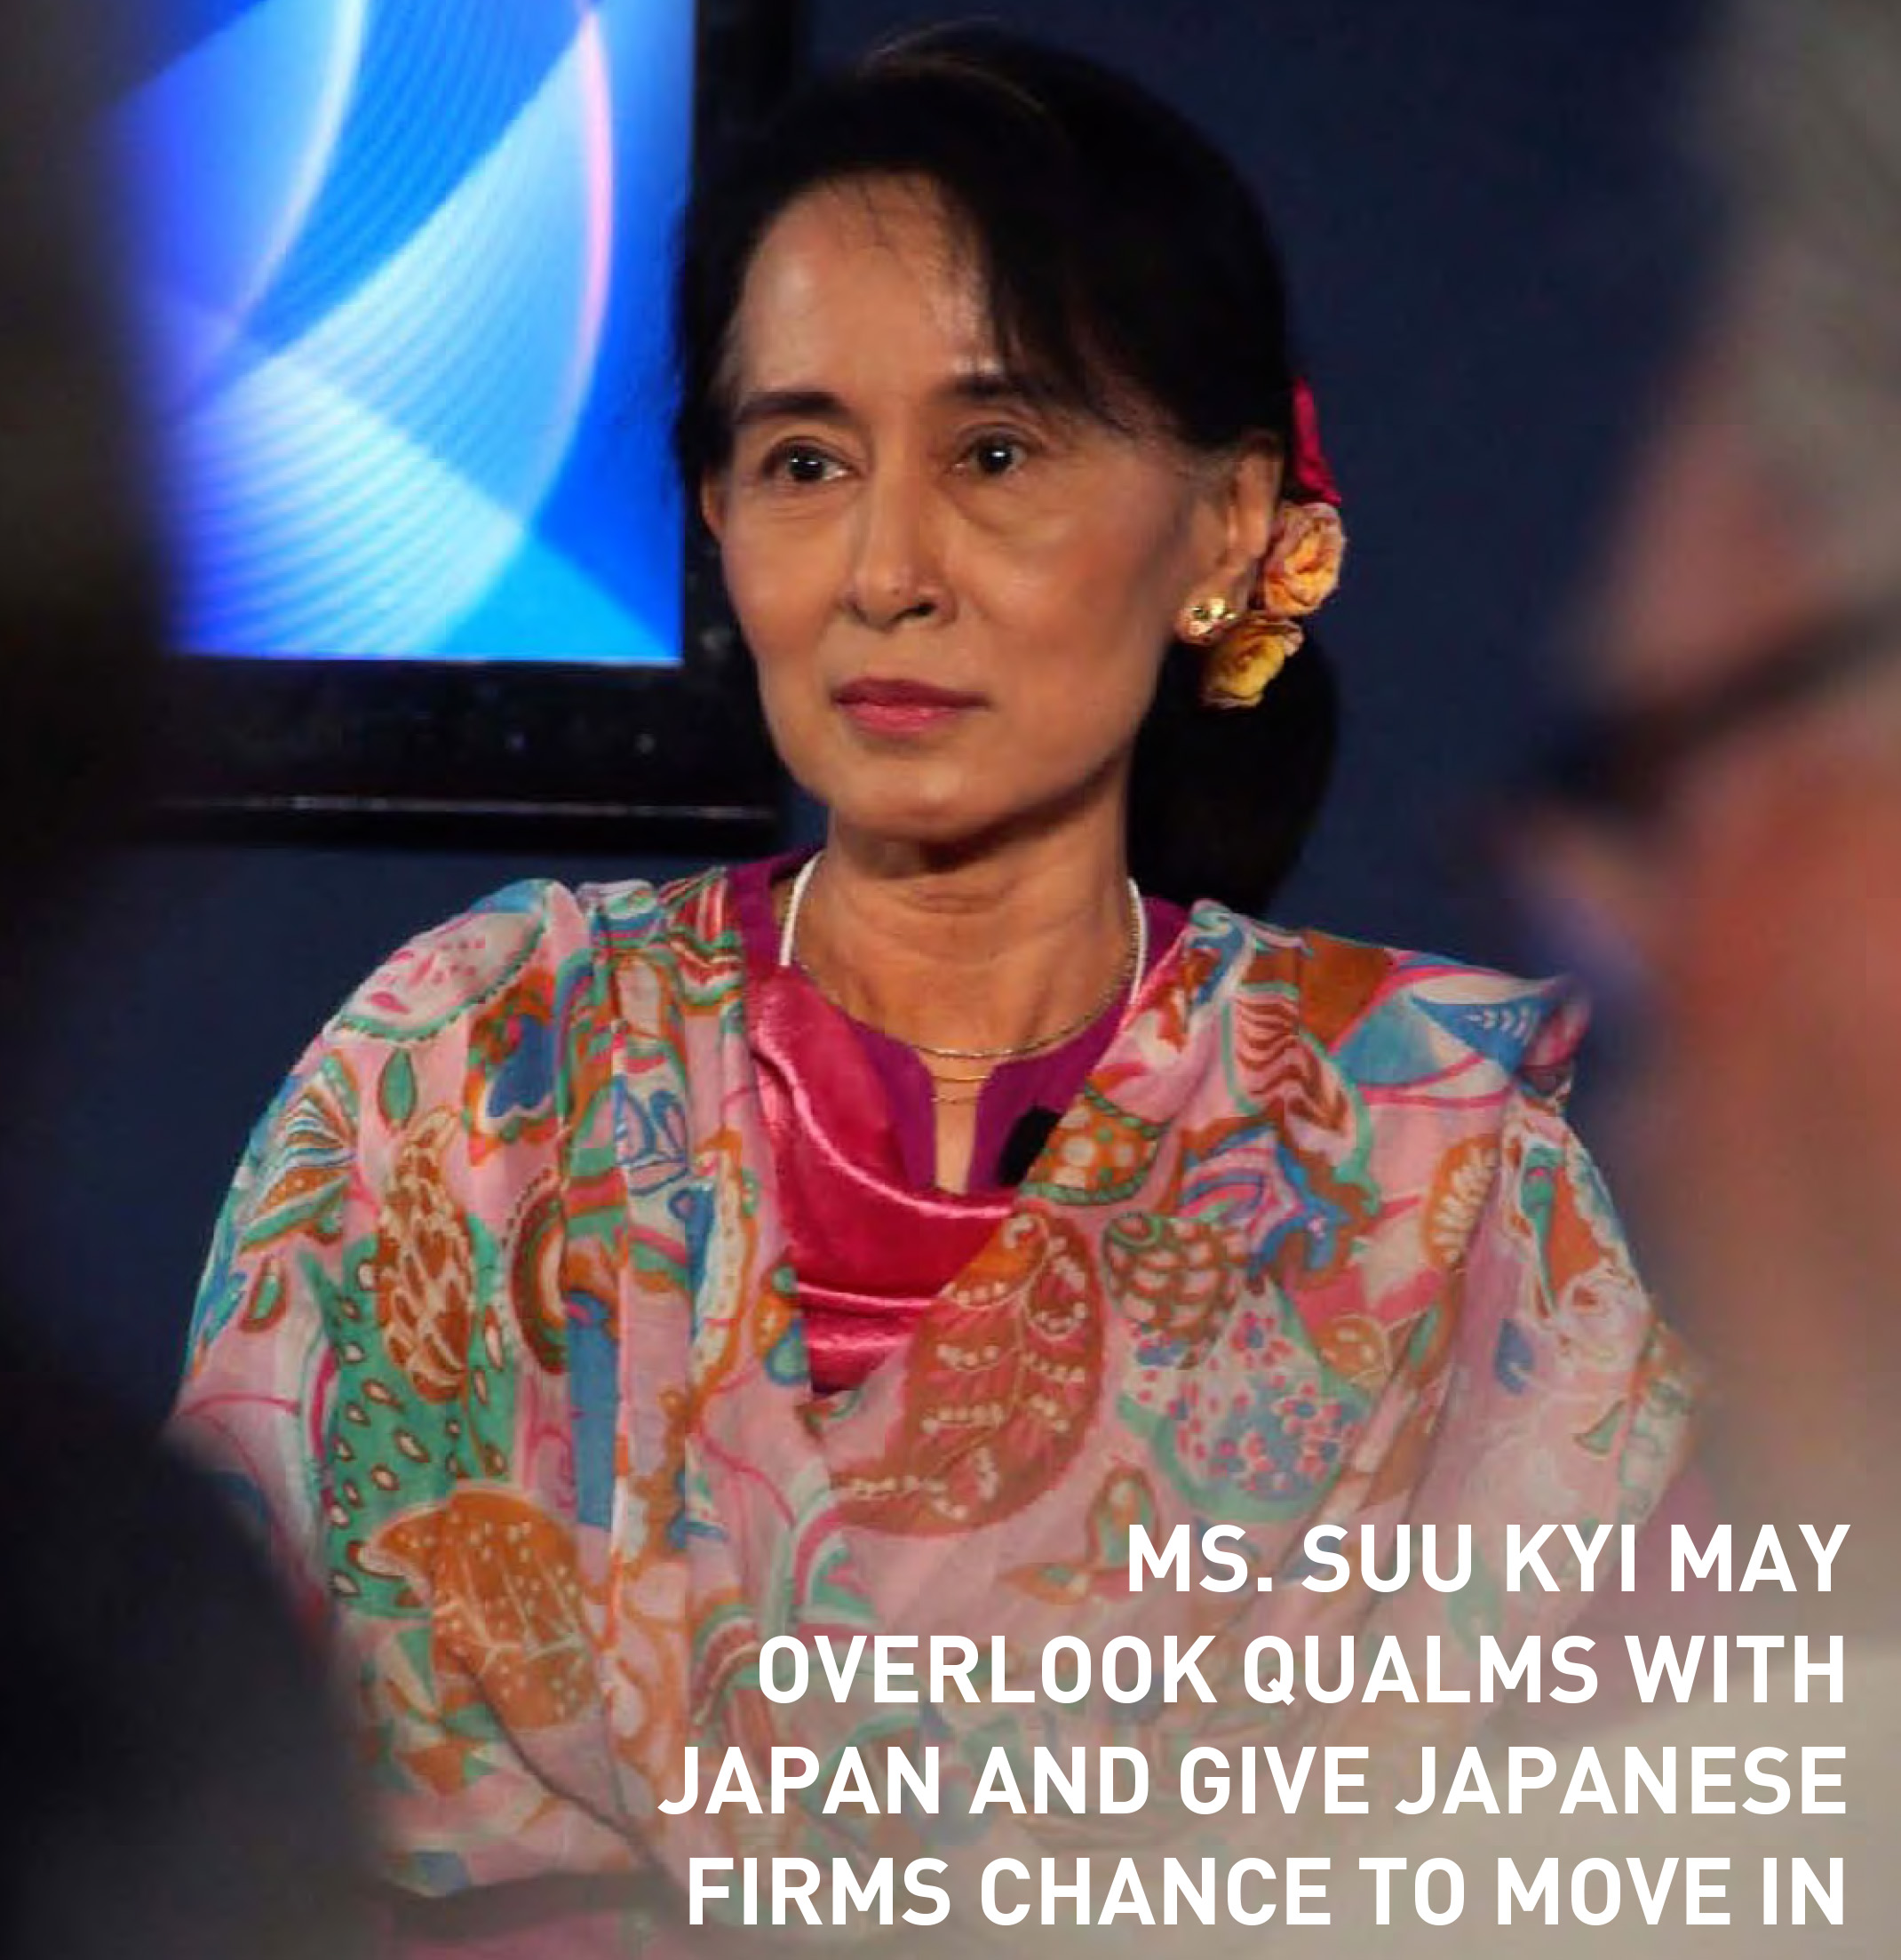 MS. SUU KYI MAY OVERlOOK QUAlMS WITH JAPAN AND GIVE JAPANESE fIRMS CHANCE TO MOVE IN